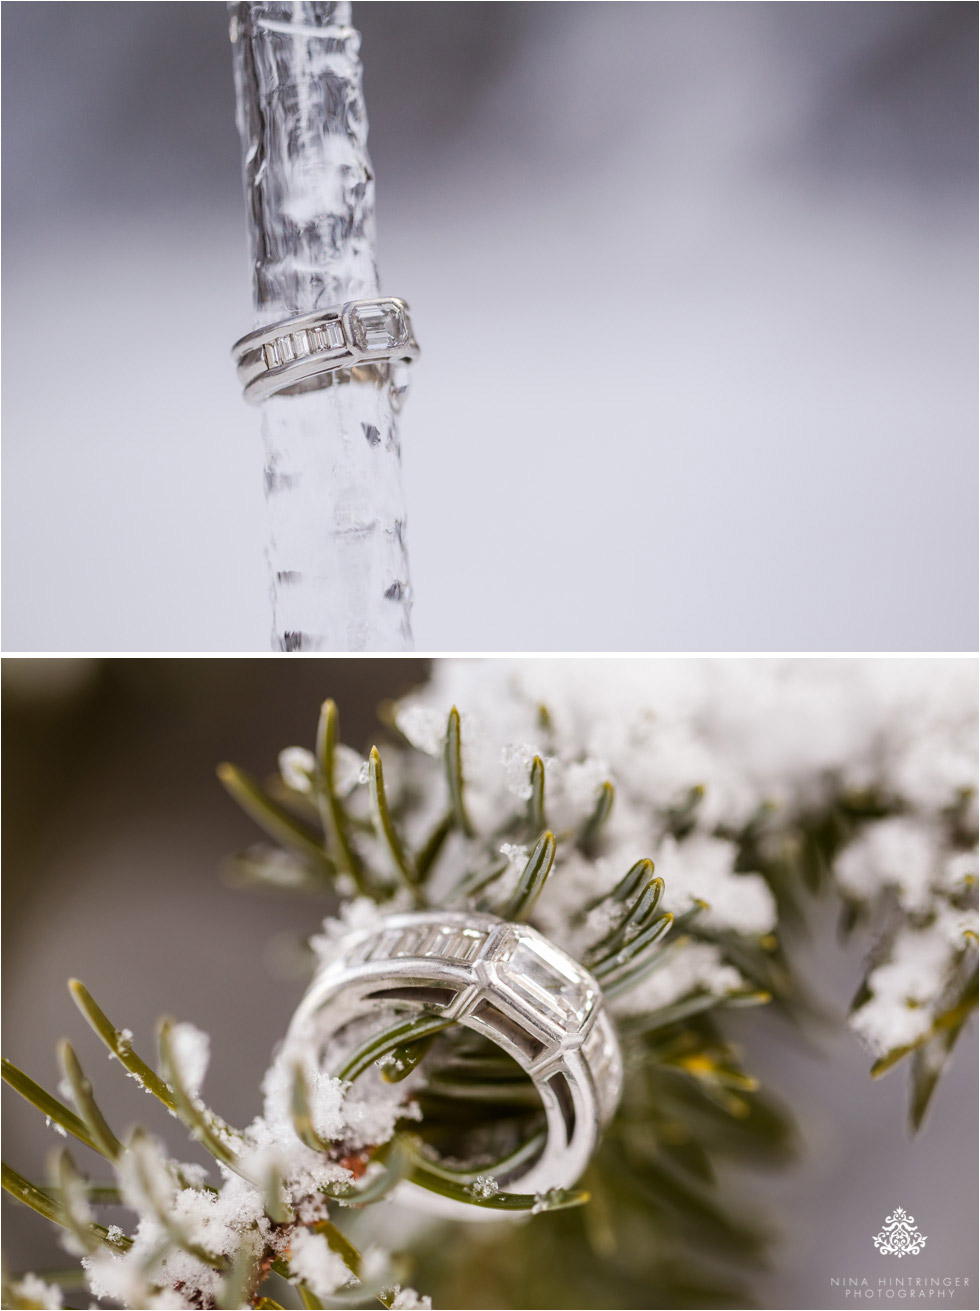 beautiful engagement ring in a winter wonderland at the Verwalltal near st. anton am arlberg - Blog of Nina Hintringer Photography - Wedding Photography, Wedding Reportage and Destination Weddings